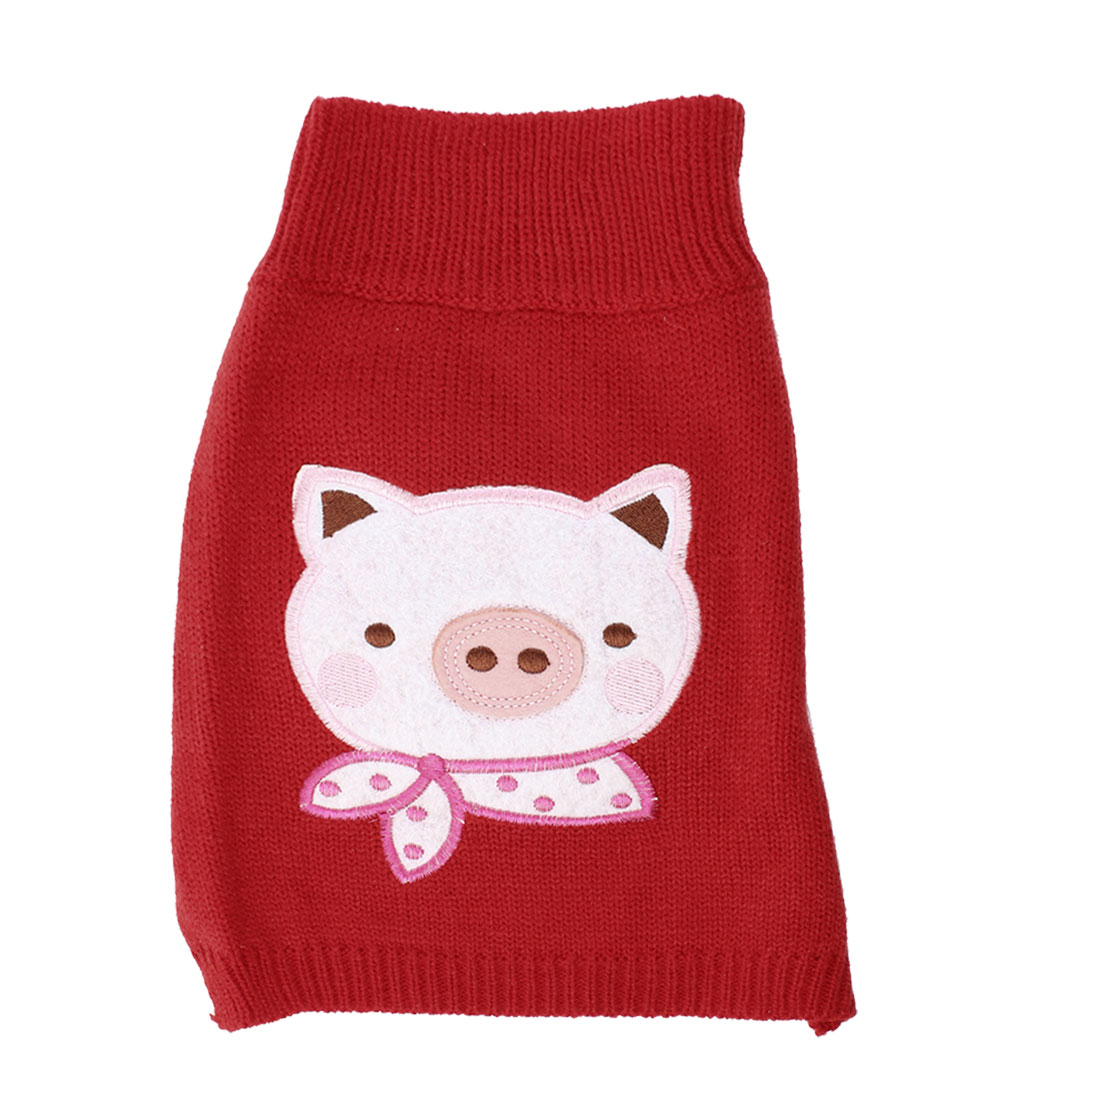 Pet Dog Puppy Pig Pattern Ribbed Cuff Knitted Apparel Sweater Red M